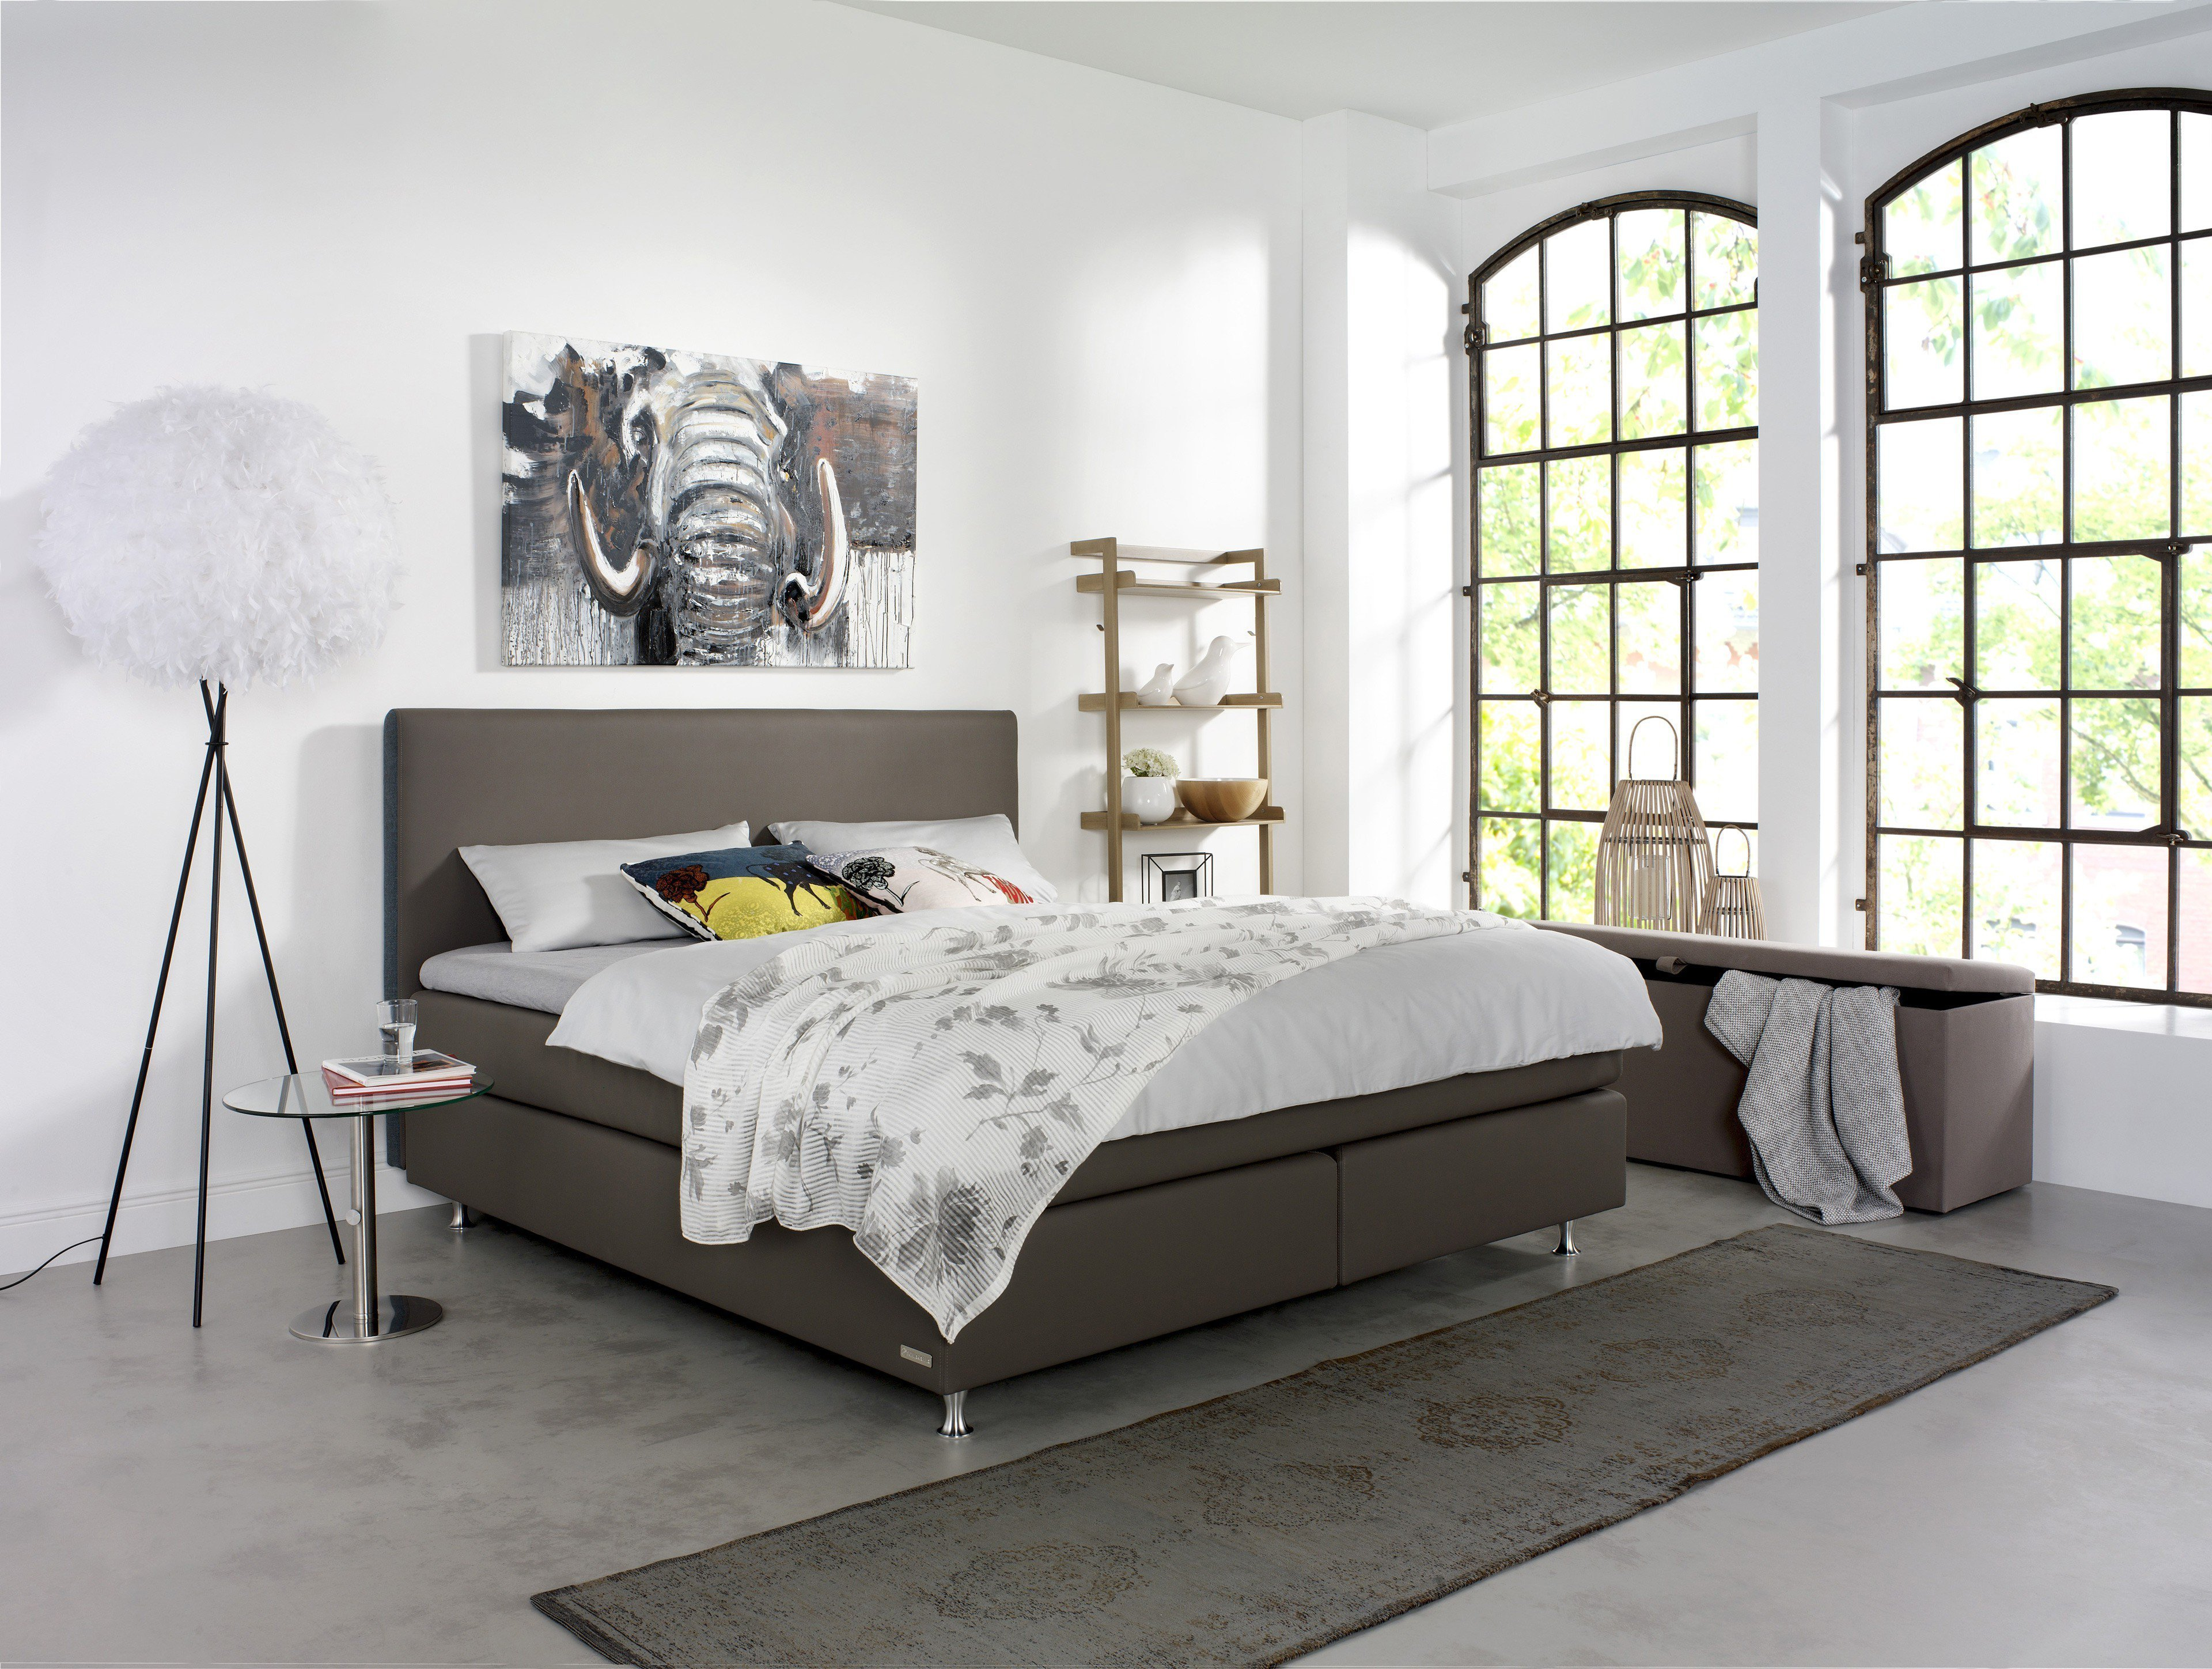 schlaraffia boxspringbett premiere in taupe m bel letz ihr online shop. Black Bedroom Furniture Sets. Home Design Ideas